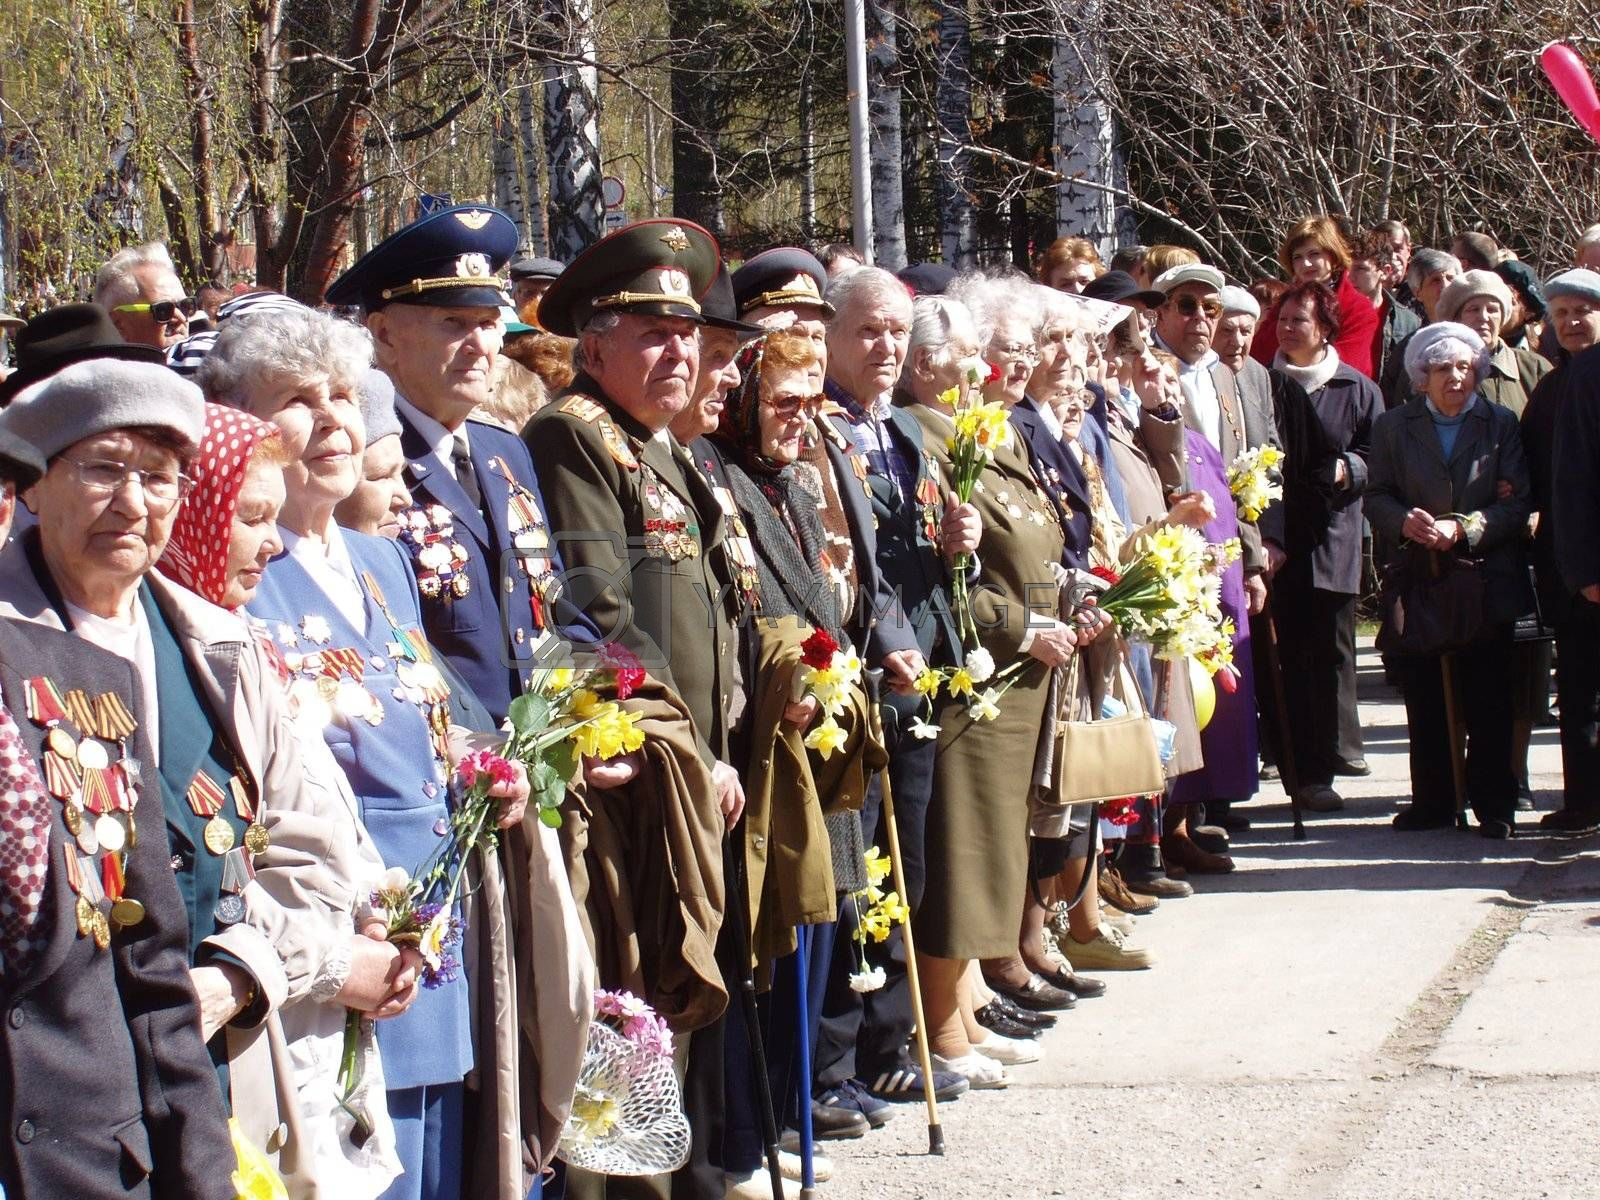 Veterans of WWII on 9/05/2007 Novosibirsk, Russia